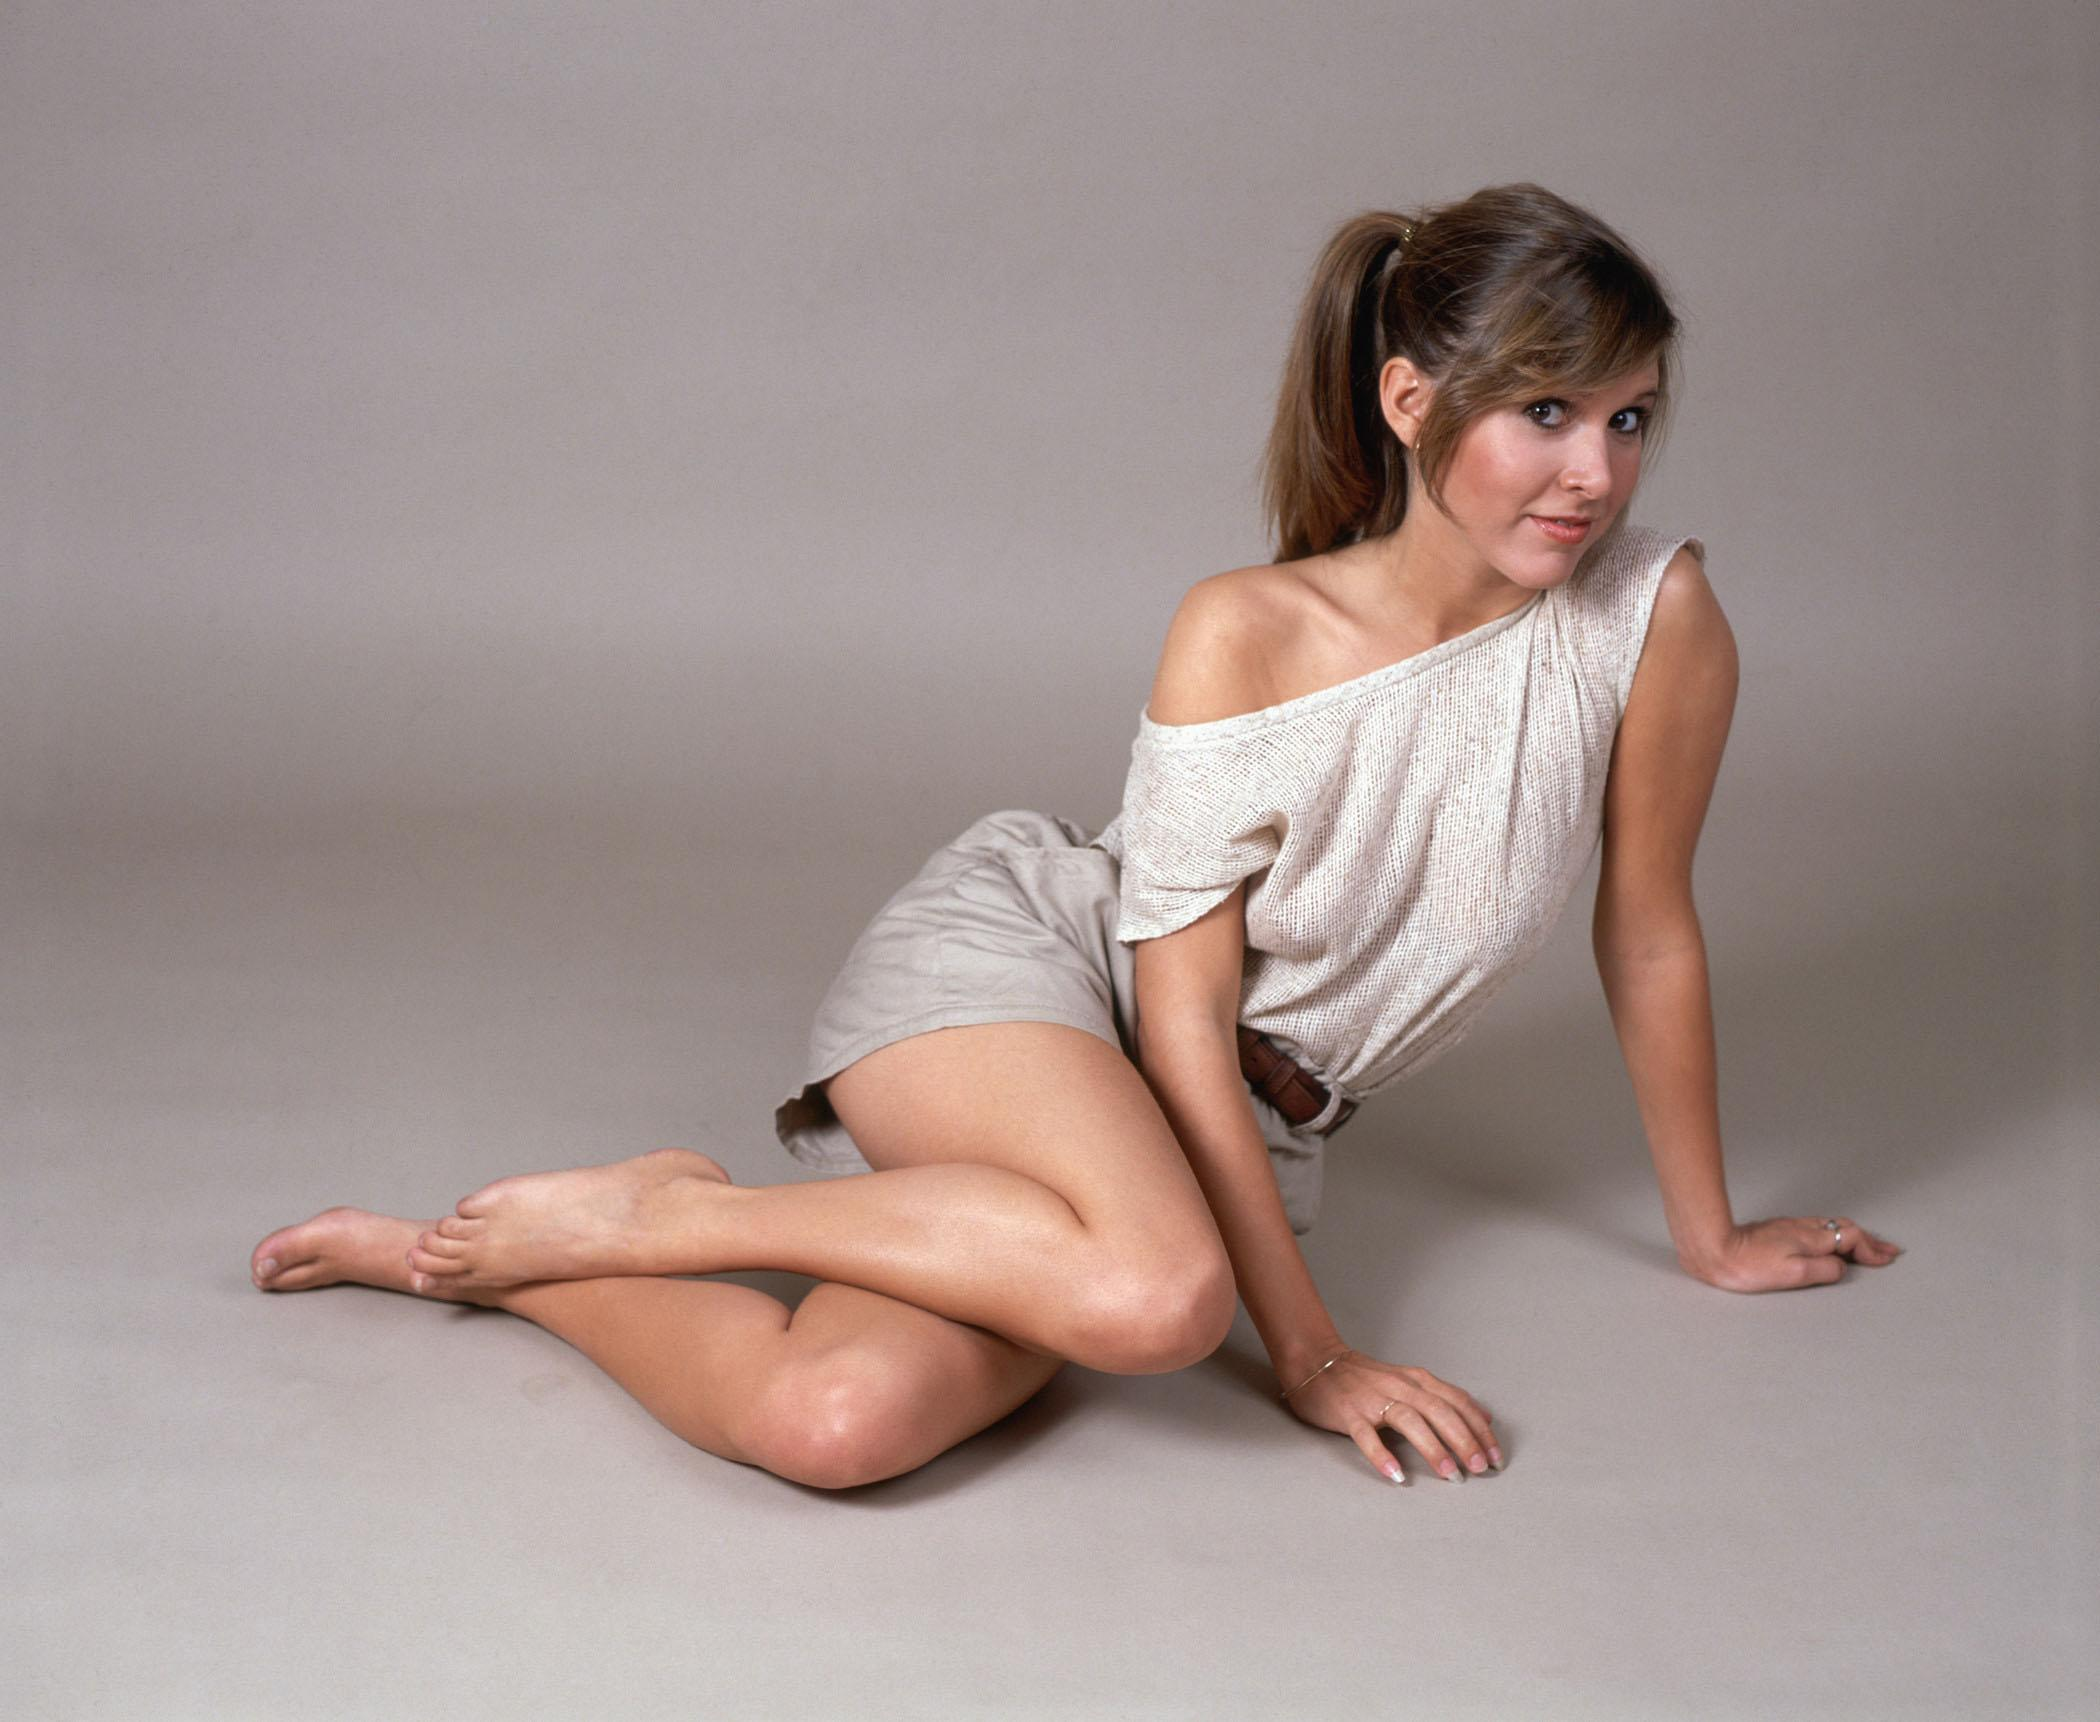 Photoshoot - Carrie Fisher Photo (8433309) - Fanpop